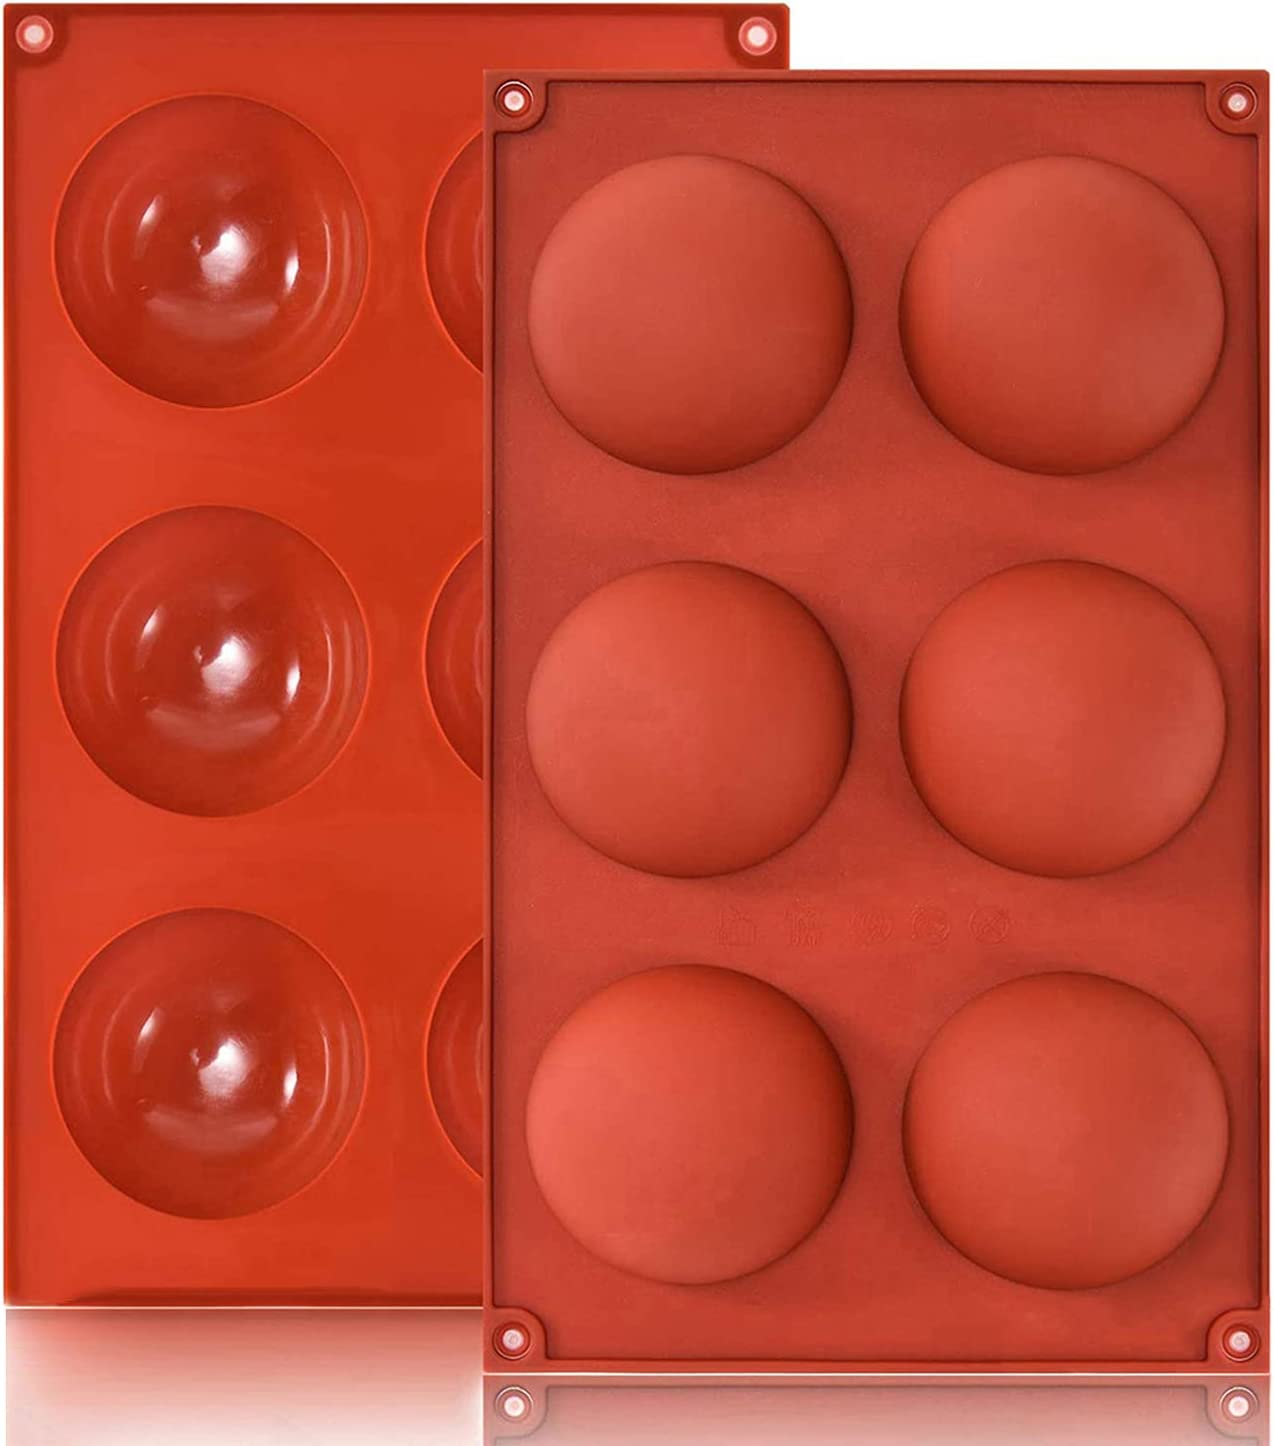 2 Pack Chocolate Hot Cocoa bomb Mold, Silicone Baking Molds Shapes Modeling Chocolate For Food Dessert Baking Cakes Jelly Dome Mousse Molds (Round)